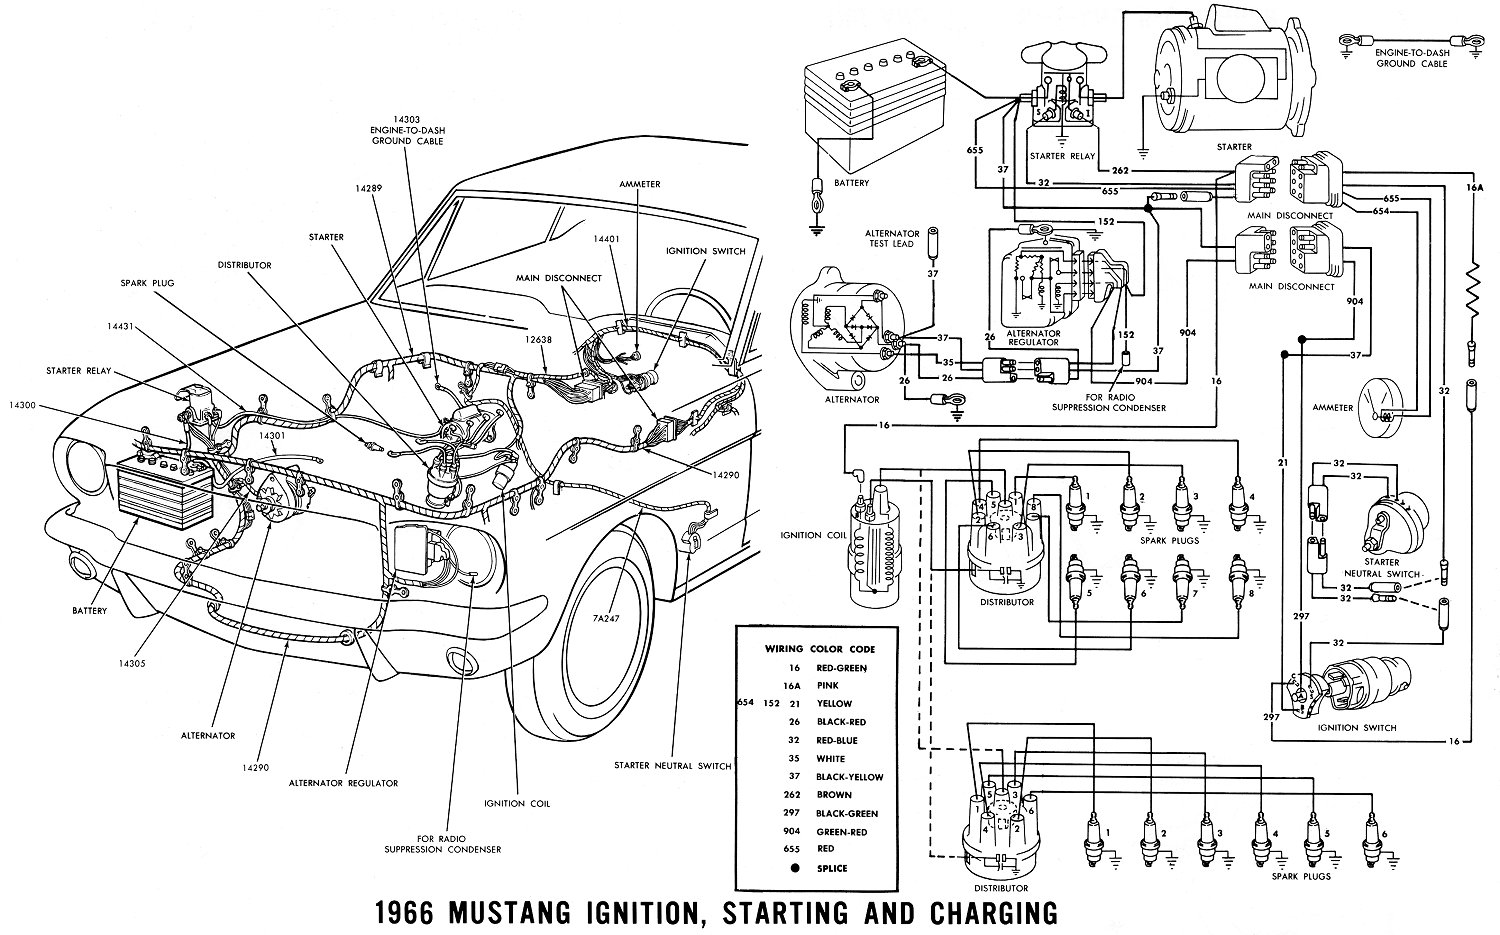 Wiring Diagram For 1993 Buick Regal further 81 F150 Starter Wiring Diagram furthermore Viewtopic moreover 1972 Toronado Wiring Diagrams moreover 1994 Ford Club Wagon Fuse Box Diagram. on buick lesabre fuse diagram wiring diagrams schematics